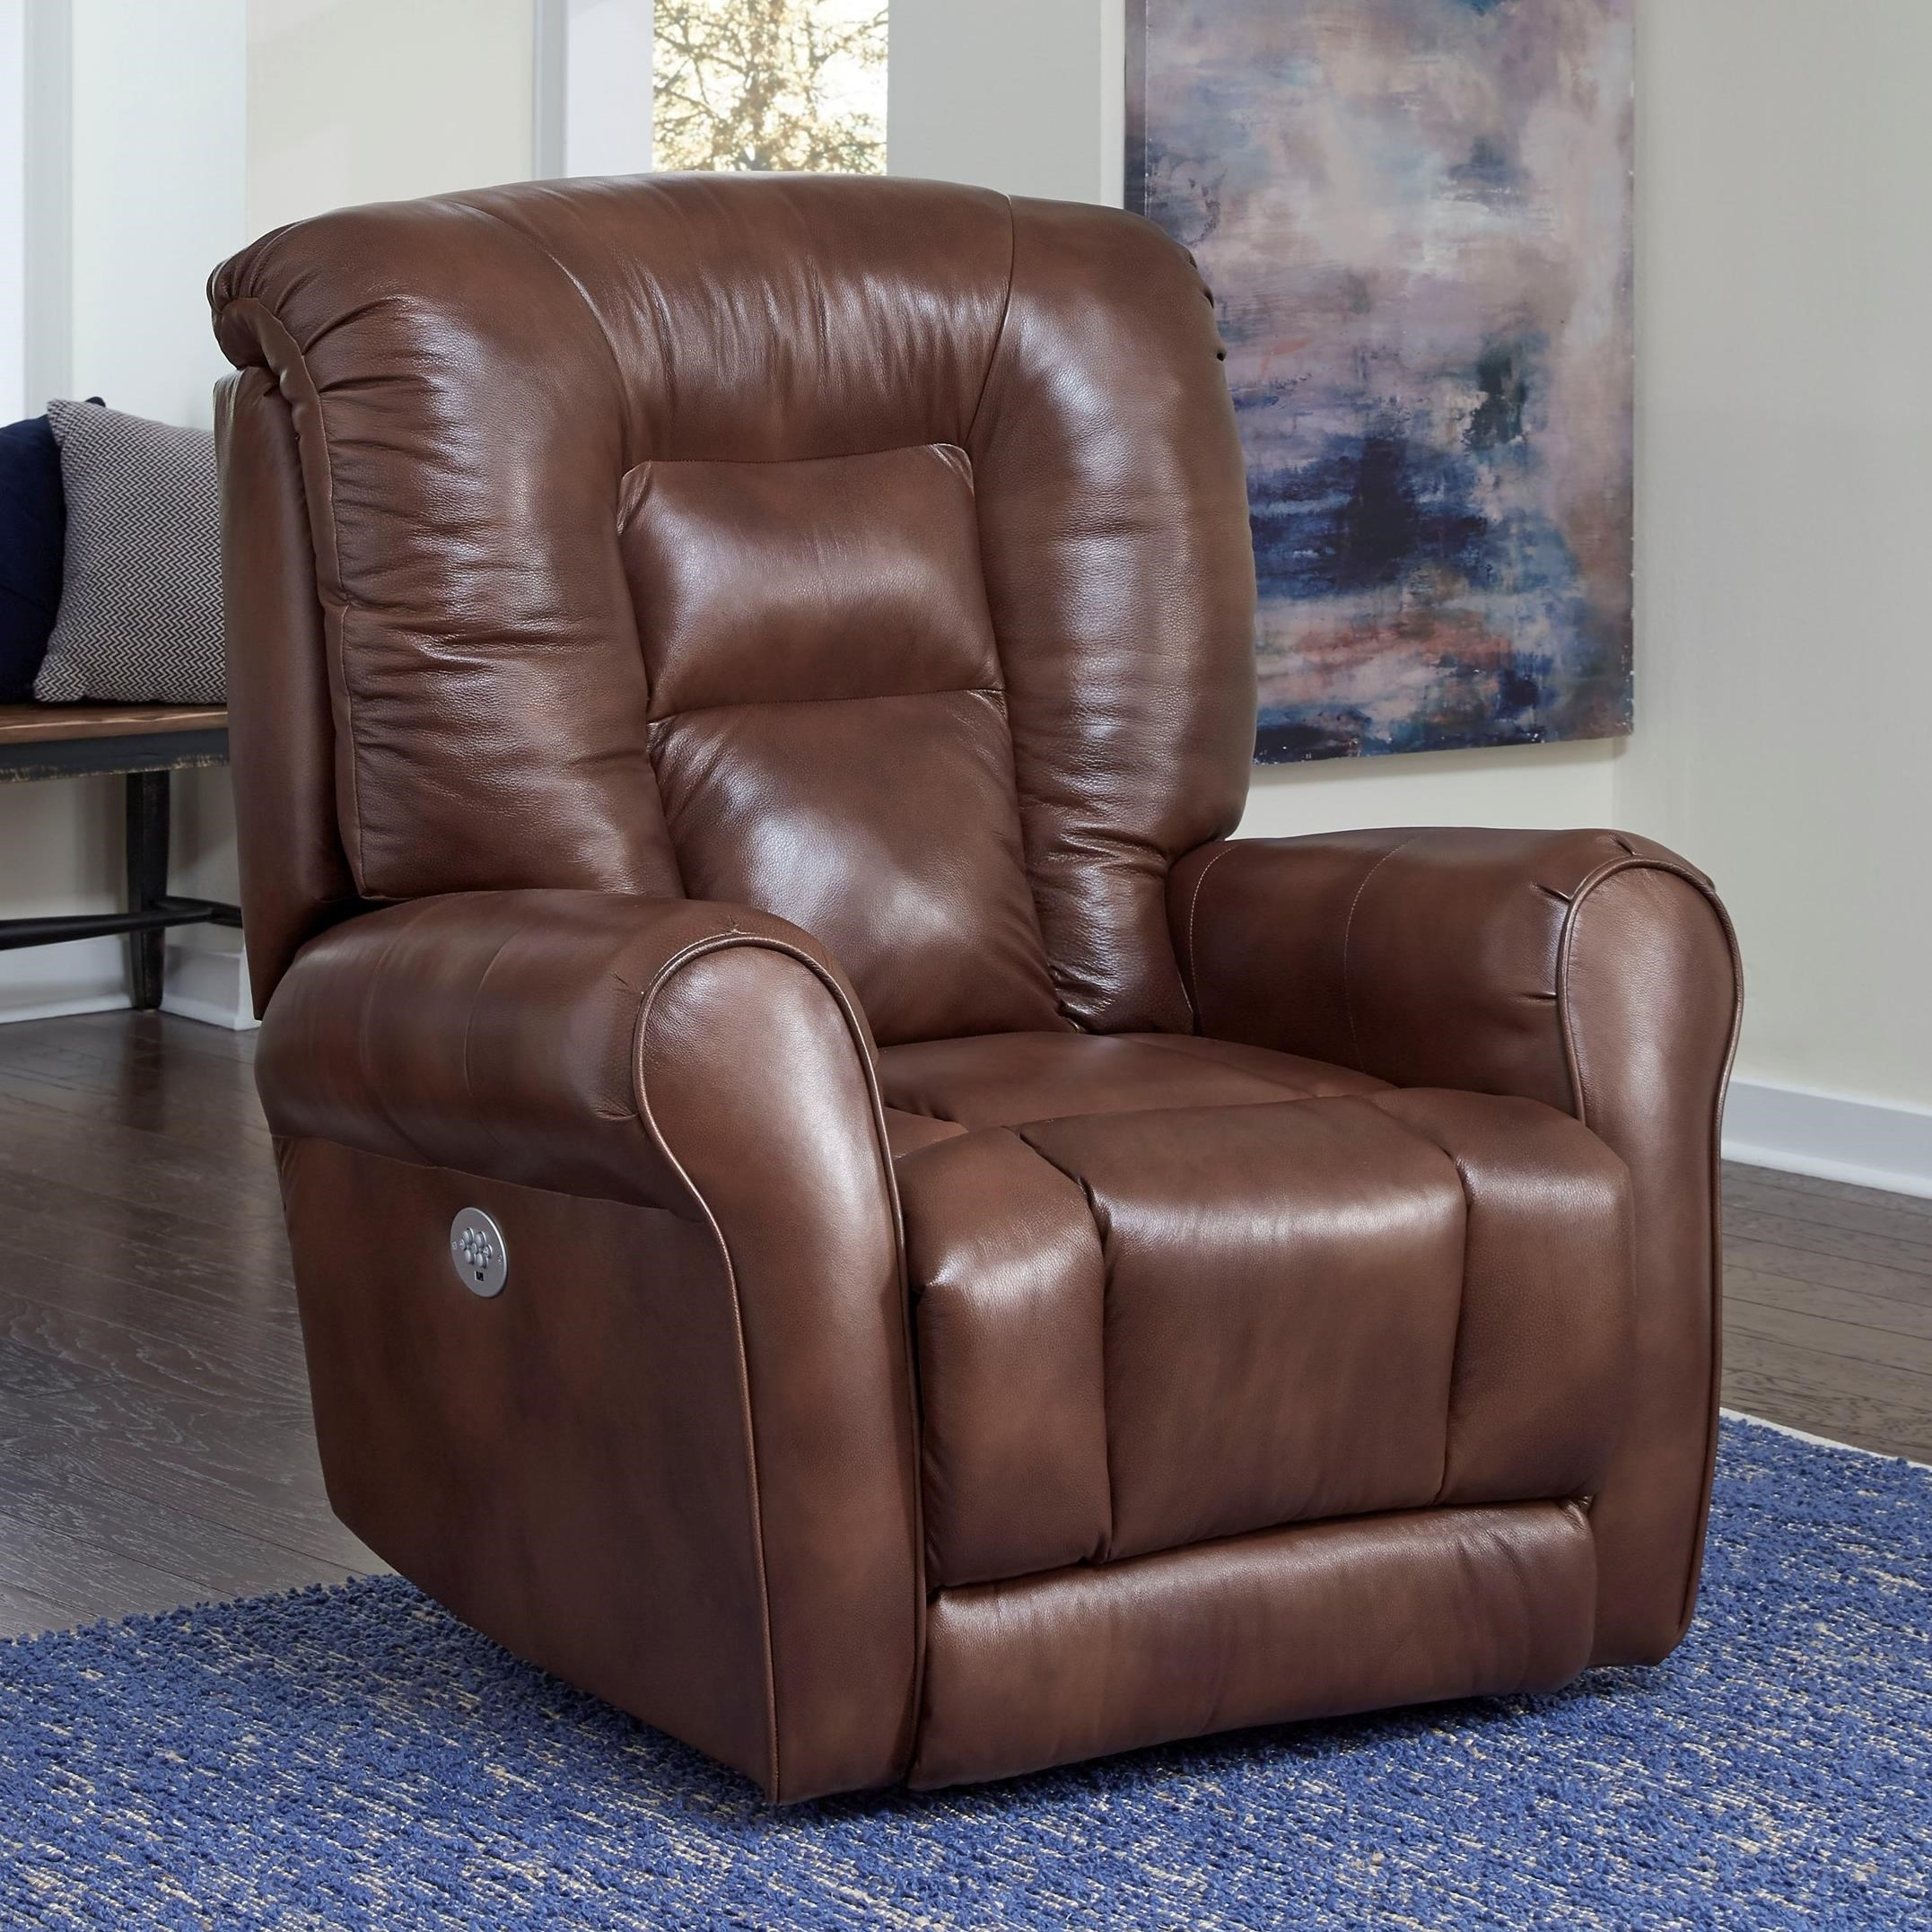 Grand Lift Recliner w/ Power Headrest by Southern Motion at Powell's Furniture and Mattress